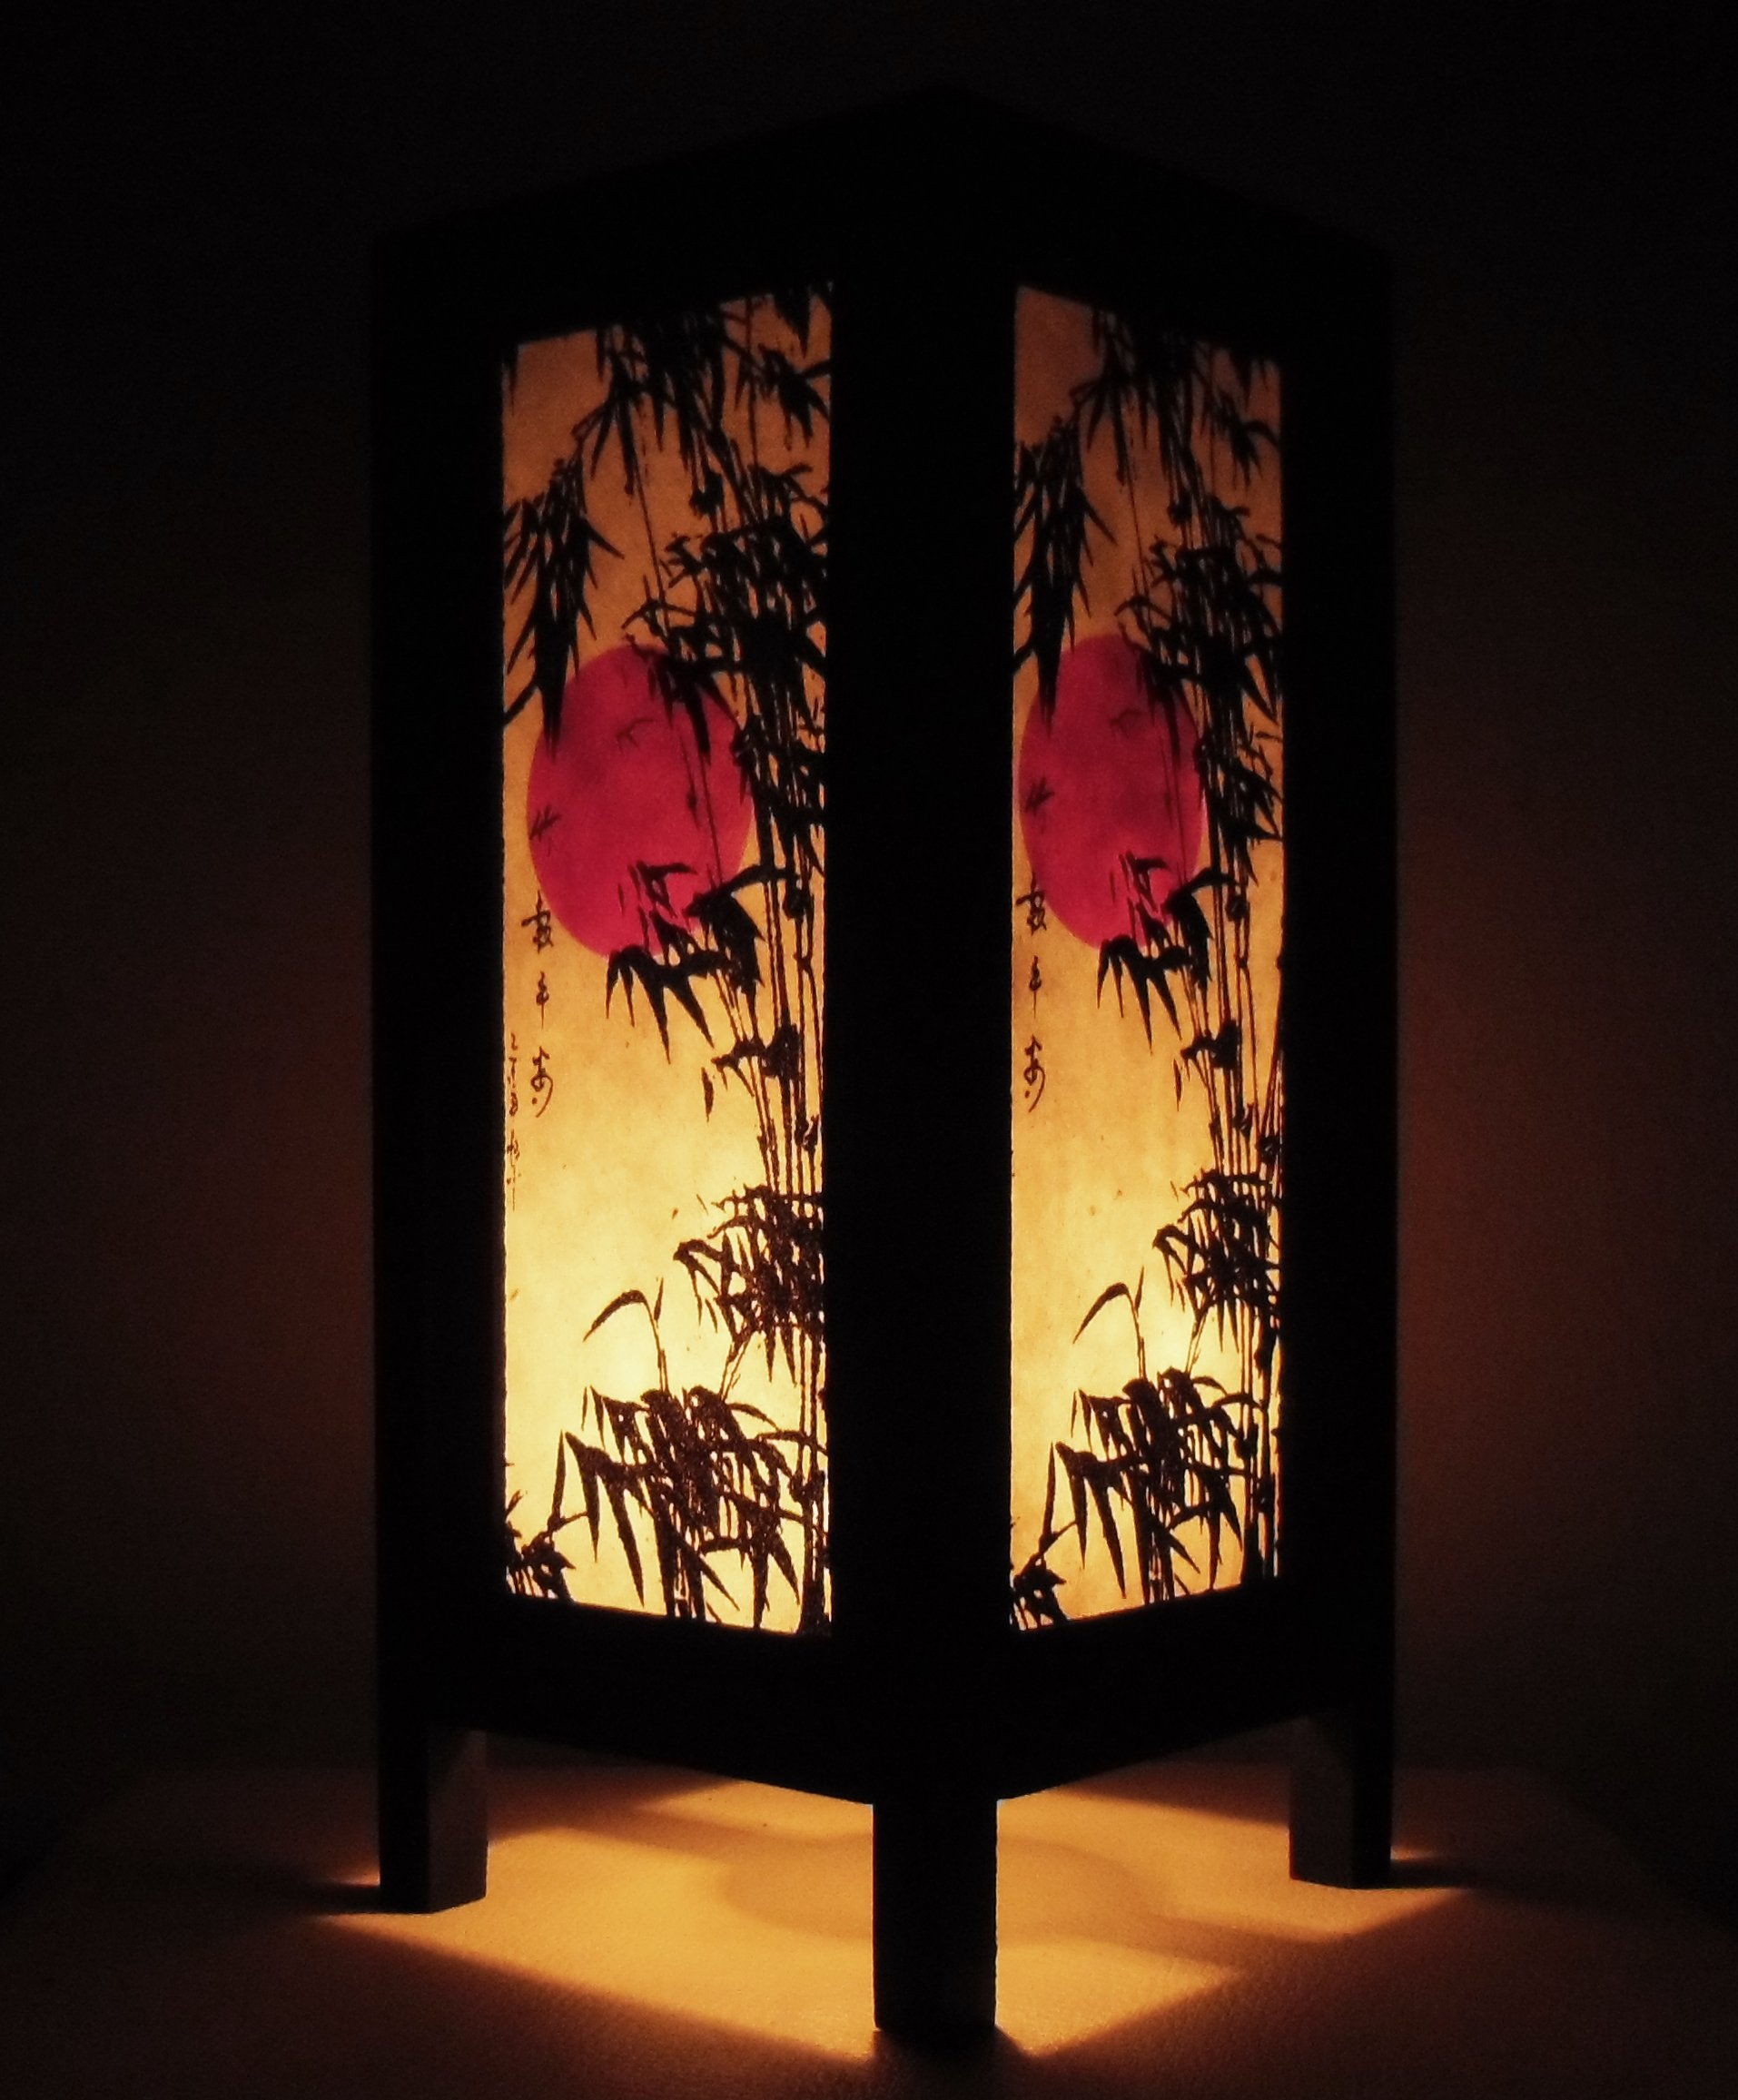 Thai Vintage Handmade ASIAN Oriental Handcraft Japanese Sunset Bamboo Tree Art Bedside Table Light or Floor Wood Lamp Home Bedroom Decor Modern Design from Thailand